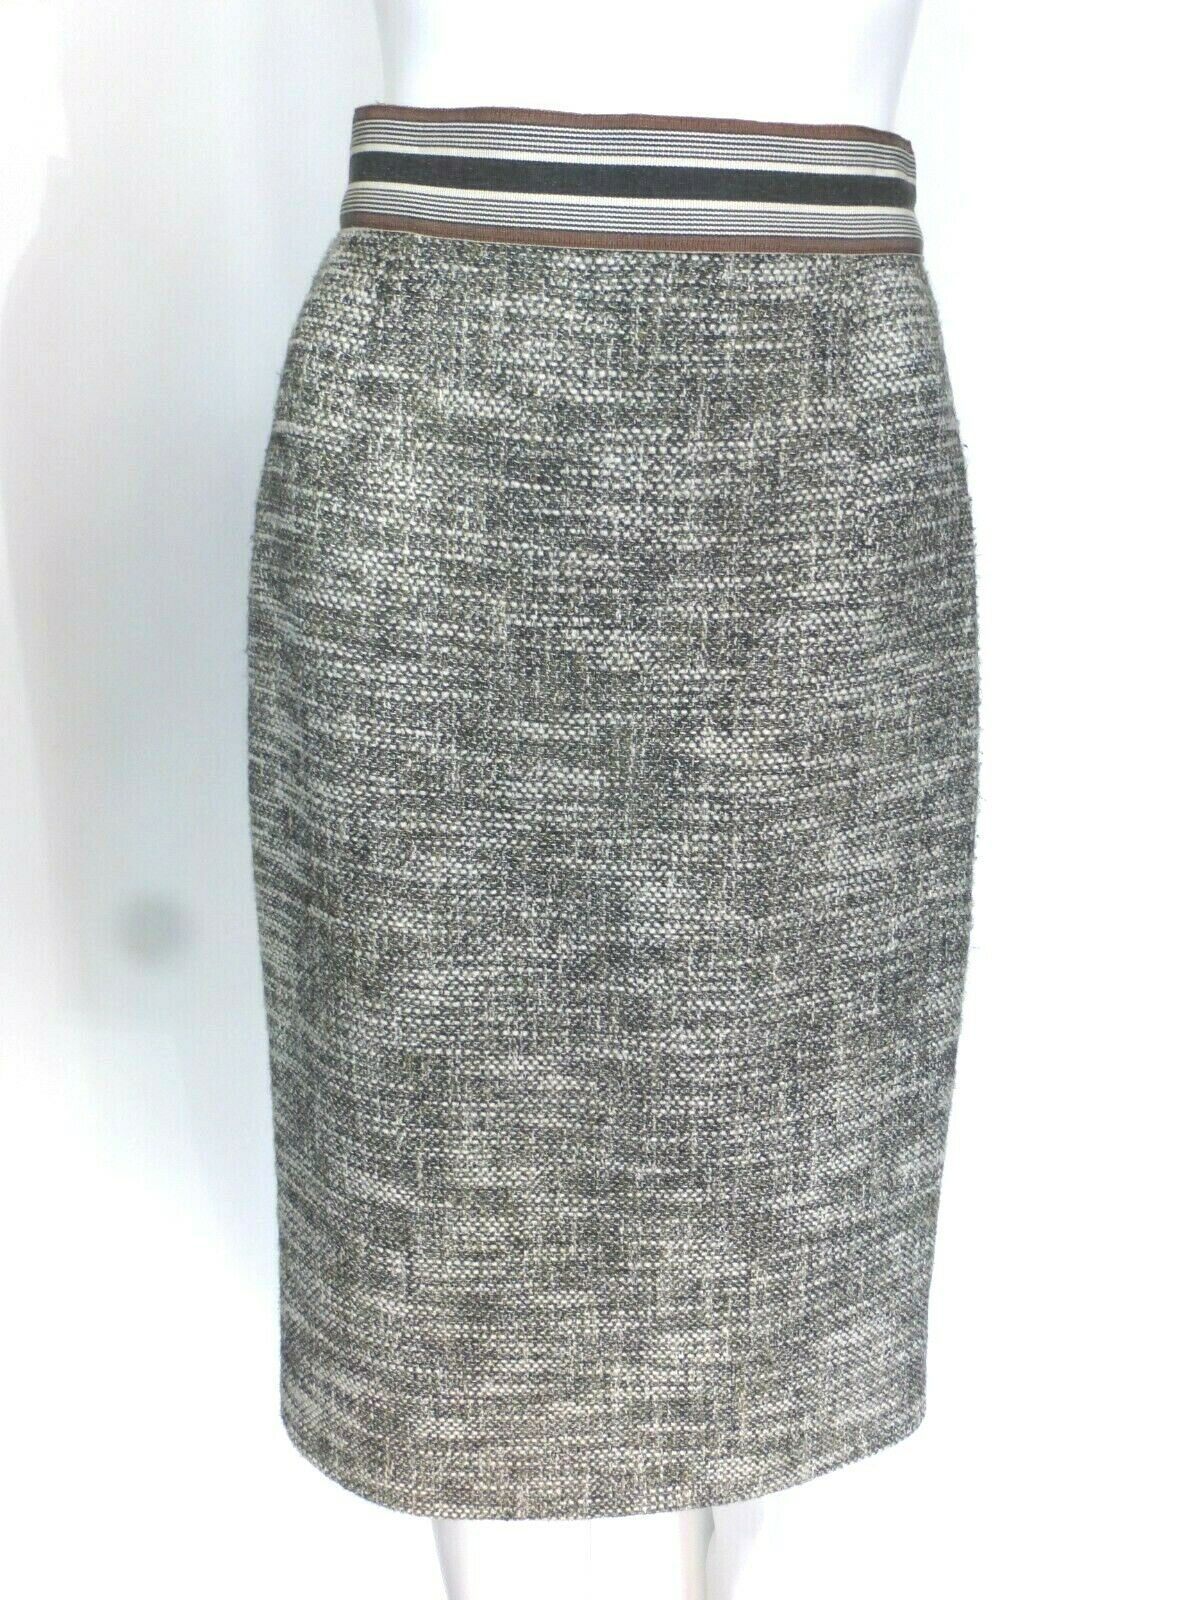 Giamattista Valli Multi-color Green Tweed Pencil Skirt Sz 8  Eu 44